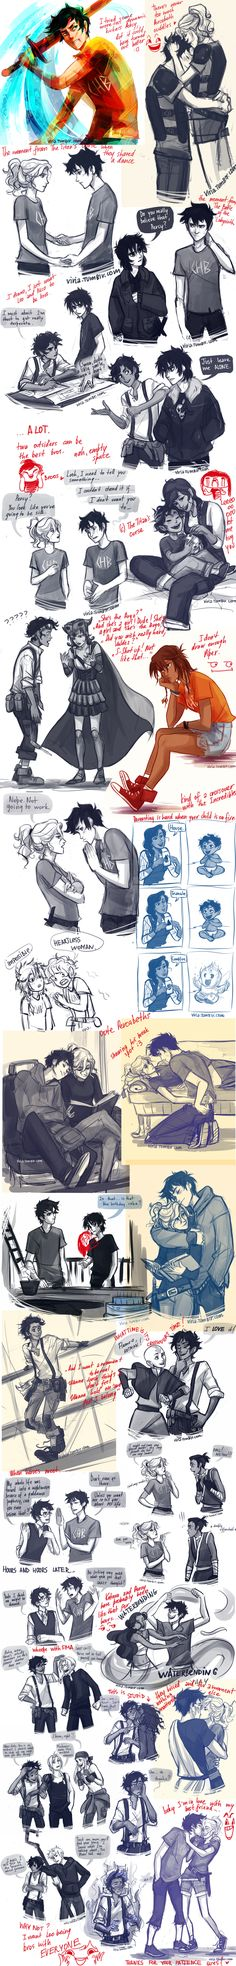 All time favorite Percy Jackson pin! This is incredible! And avatar and Jack Frost cross overs! I wish so badly that I could draw like this! and OMG PERCABETH Percy Jackson Fan Art, Percy Jackson Memes, Percy Jackson Books, Percy Jackson Fandom, Percabeth, Solangelo, Viria, Dibujos Percy Jackson, Magnus Chase